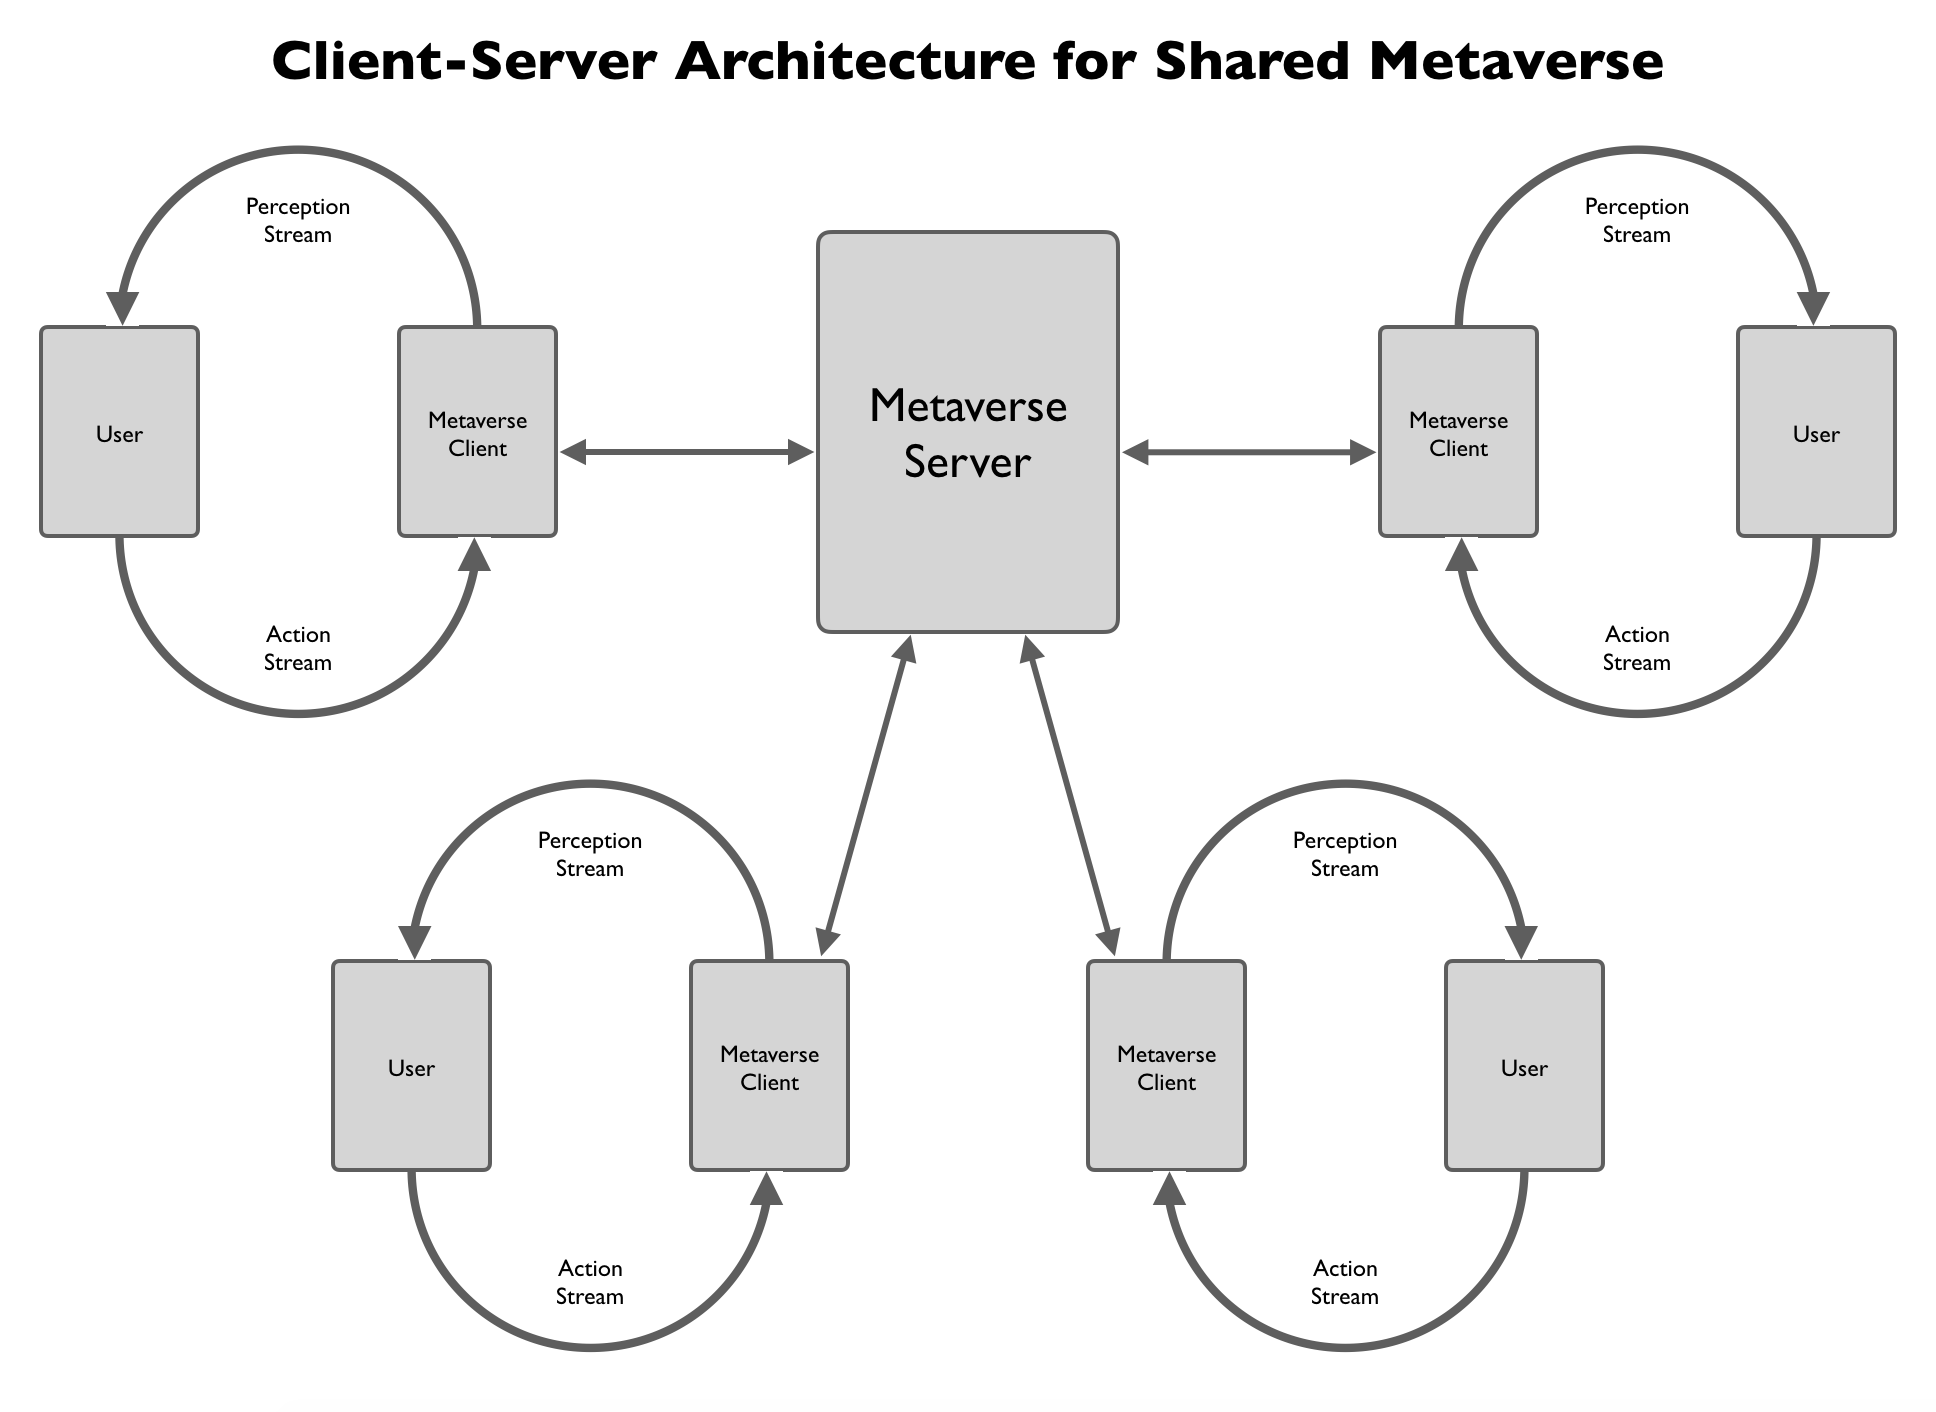 A client-server architecture of the metaverse consists of a metaverse server connected to many metaverse clients running their own interaction loops with their users.